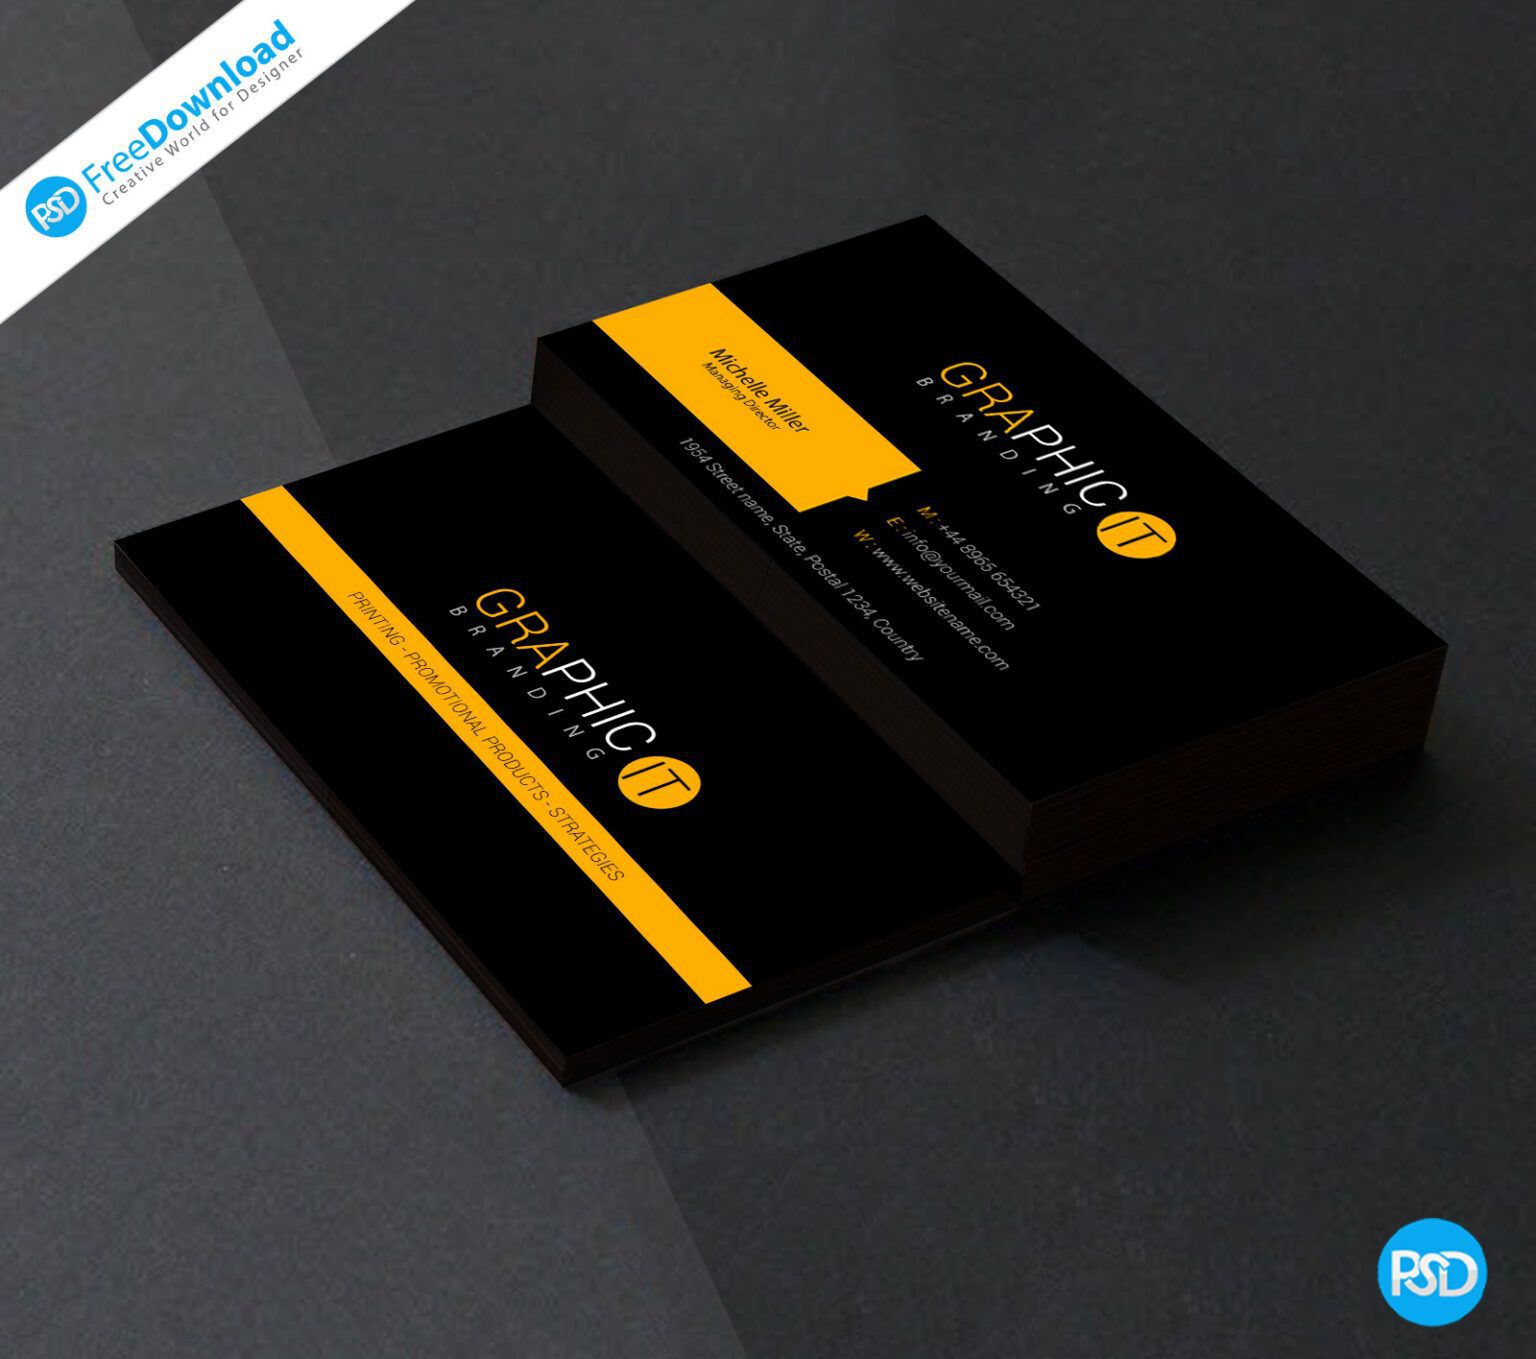 005 Awesome Blank Busines Card Template Psd Free Download Concept  PhotoshopFull